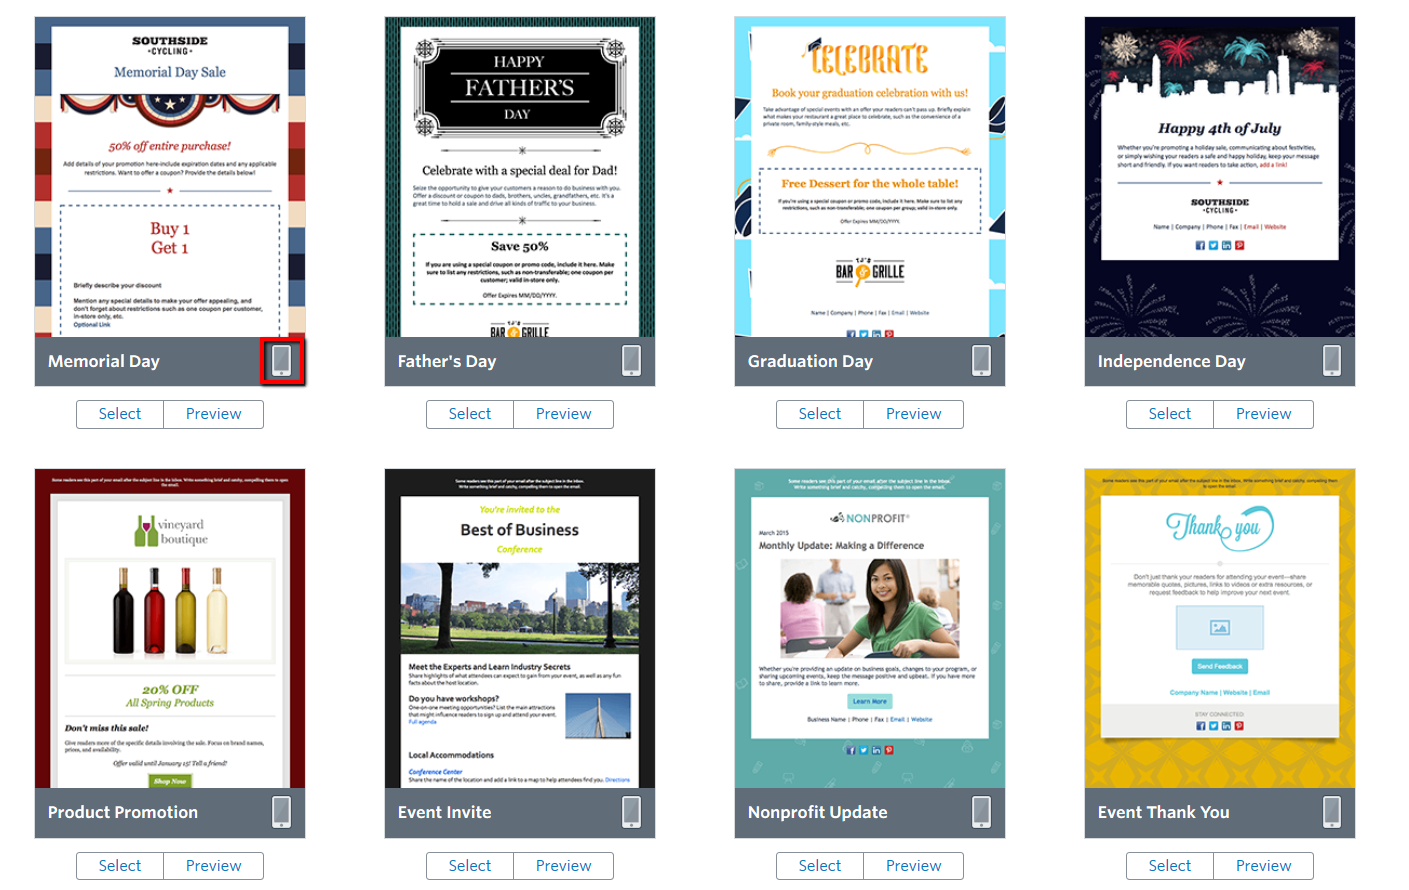 How To Find Mobile Friendly Templates Constant Contact Community - Constant contact templates